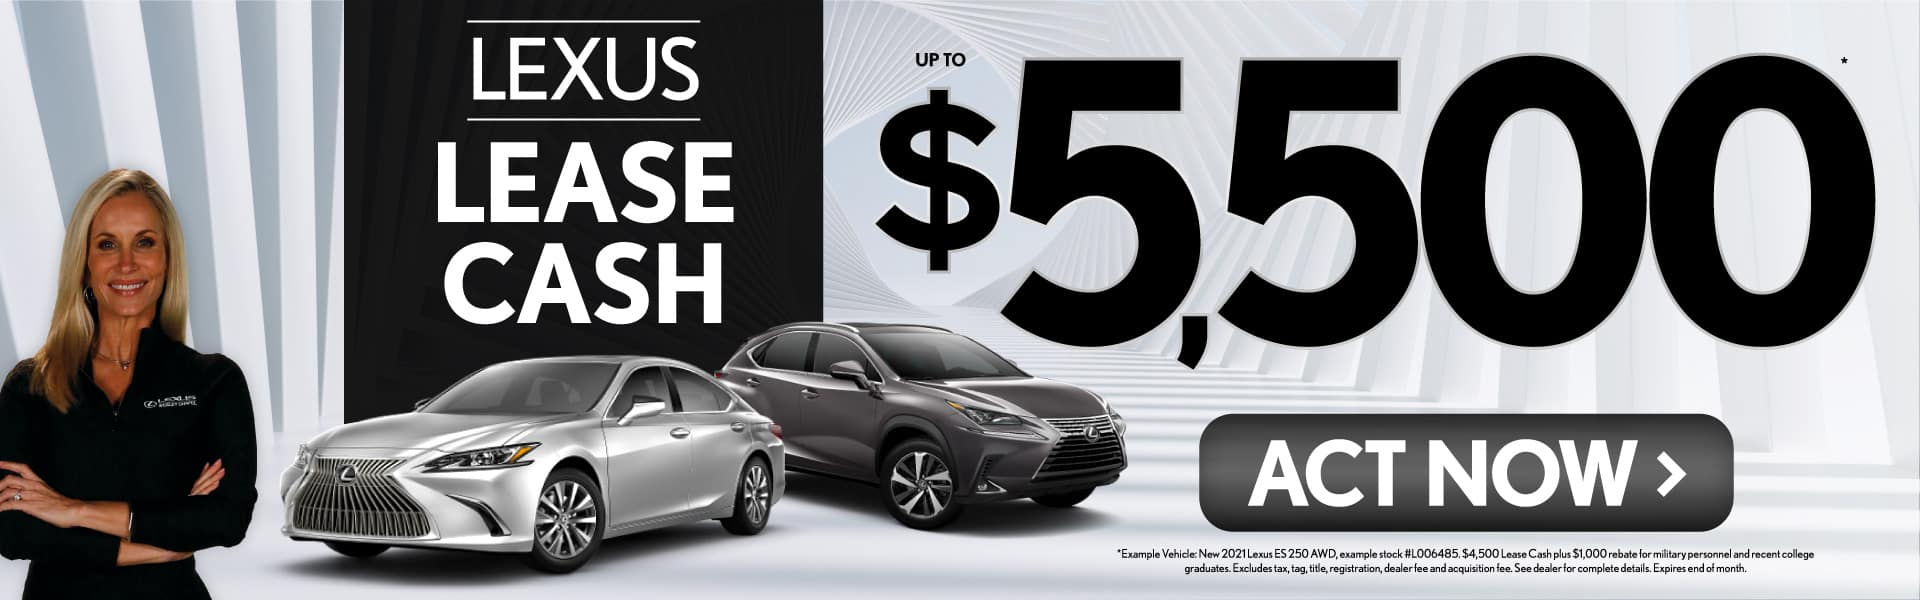 Lexus Lease Cash up to $5500 - ACT NOW